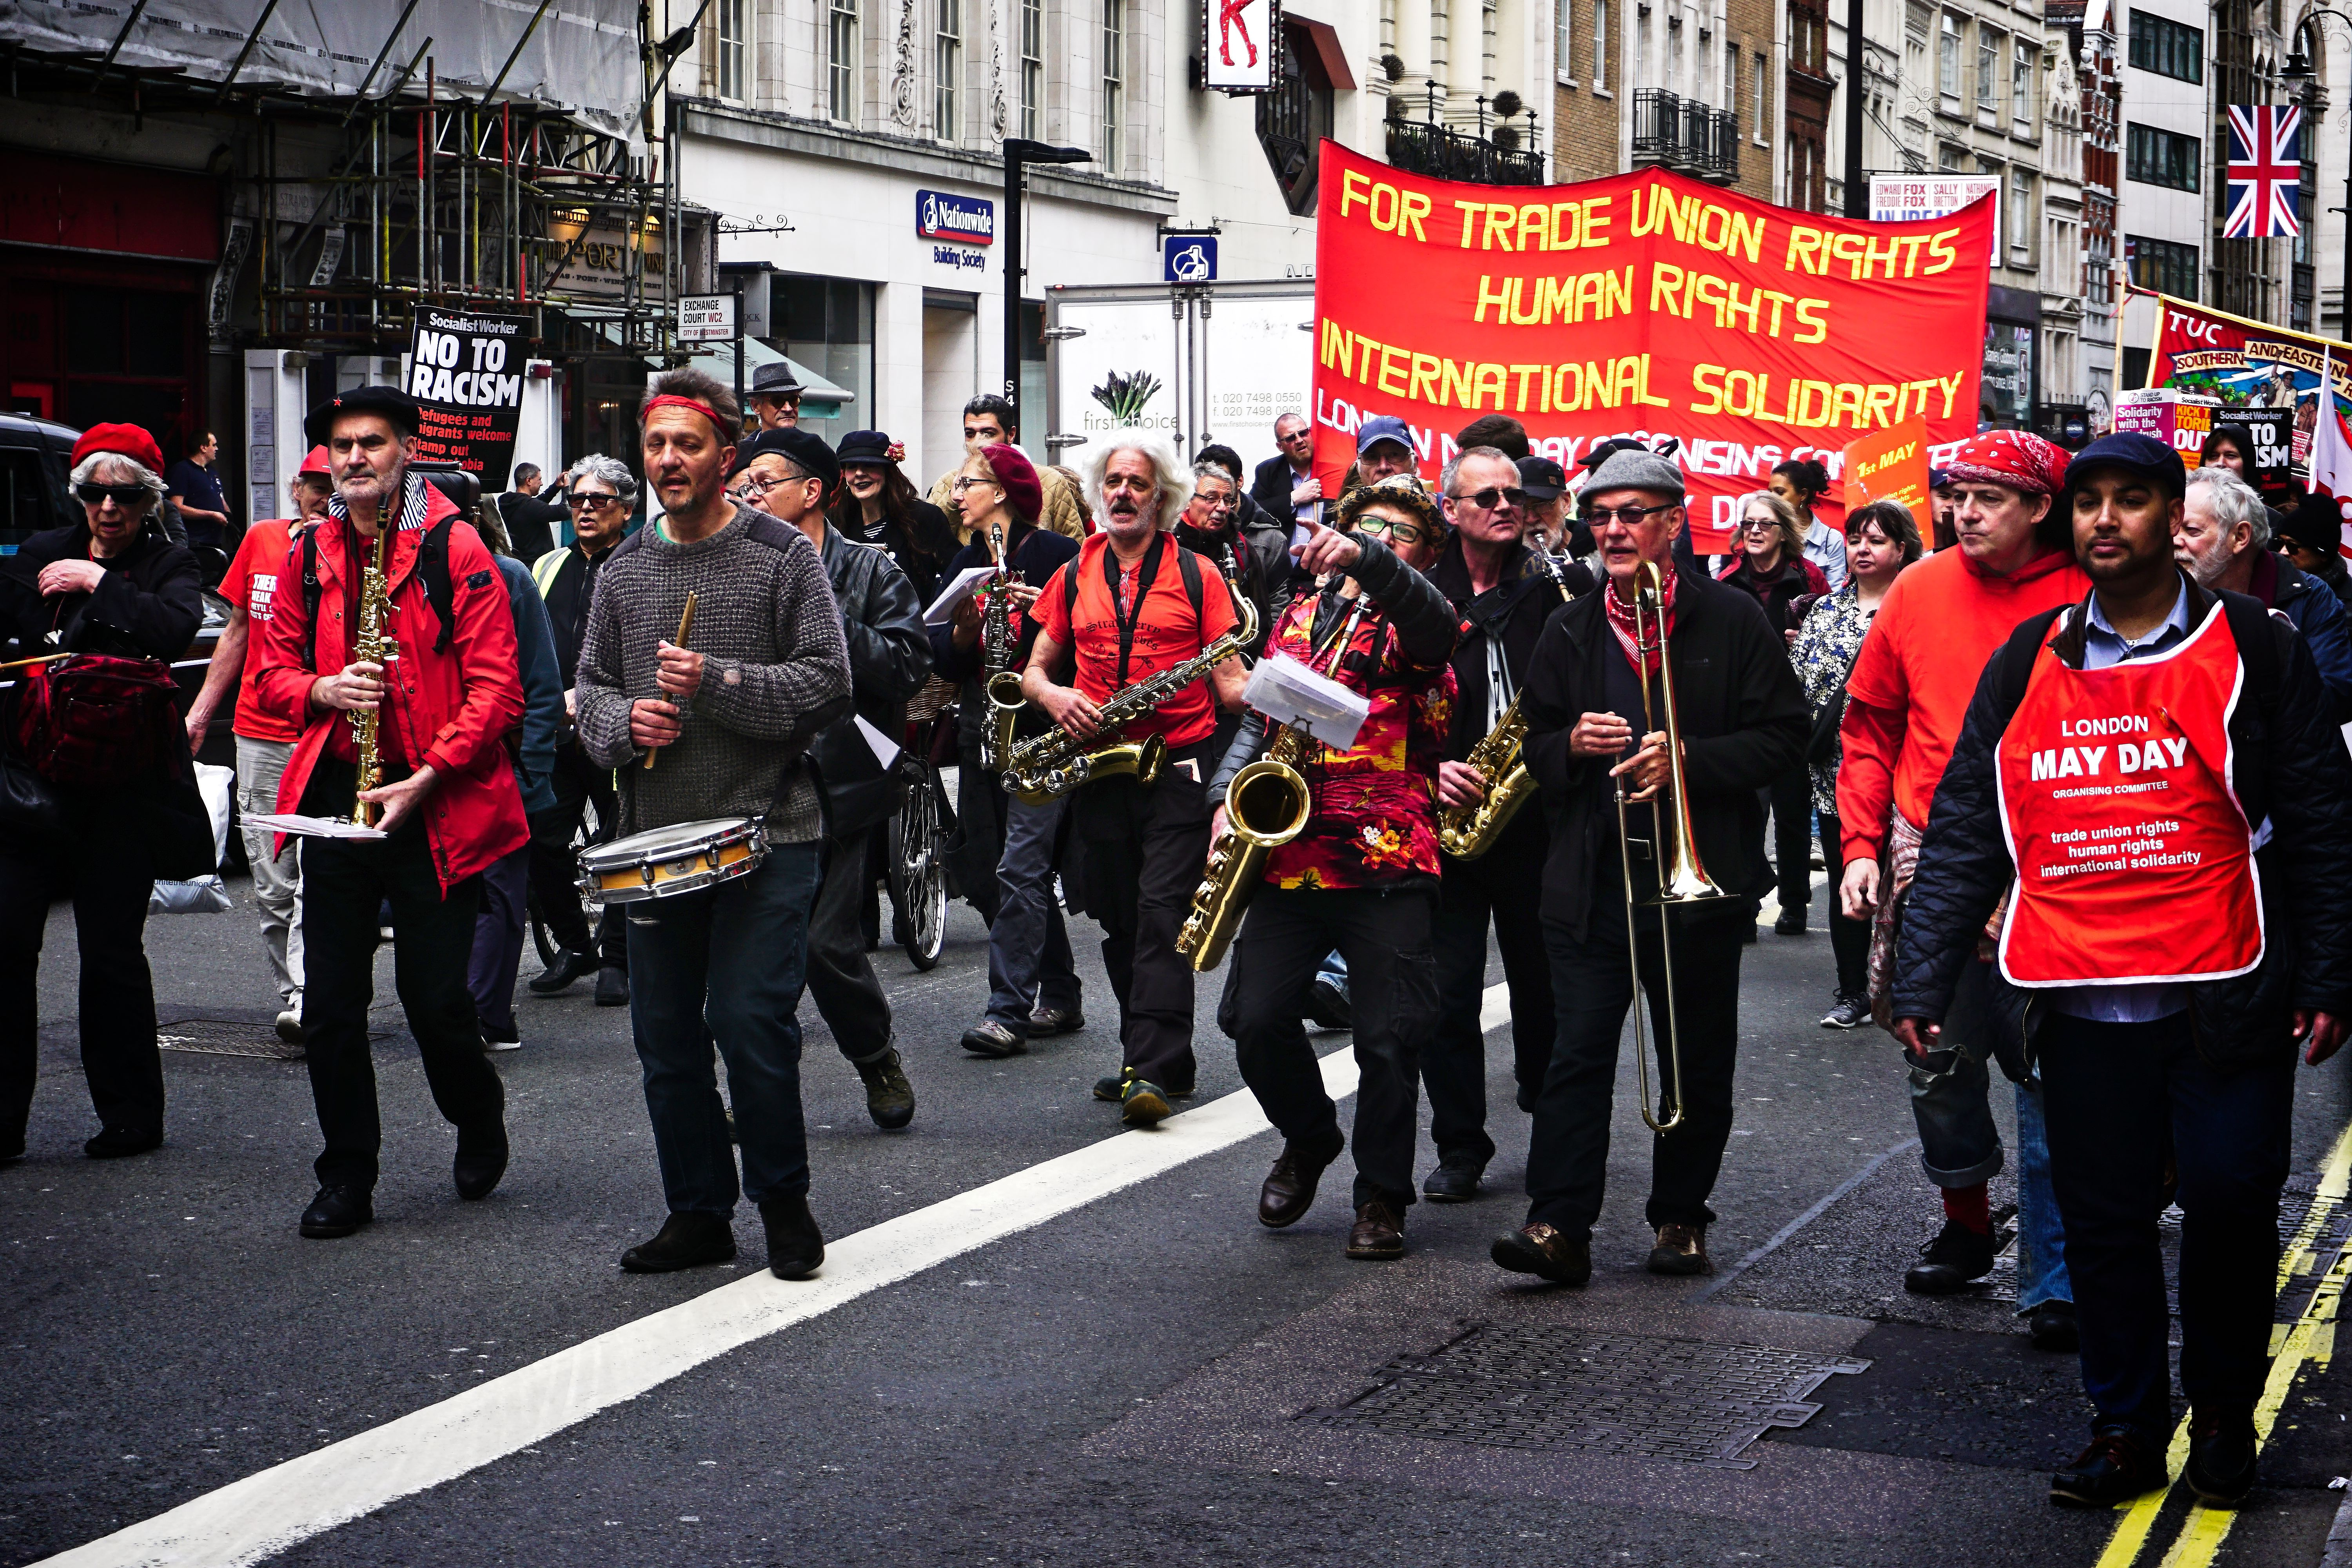 May day rally 2018 - 01 photo